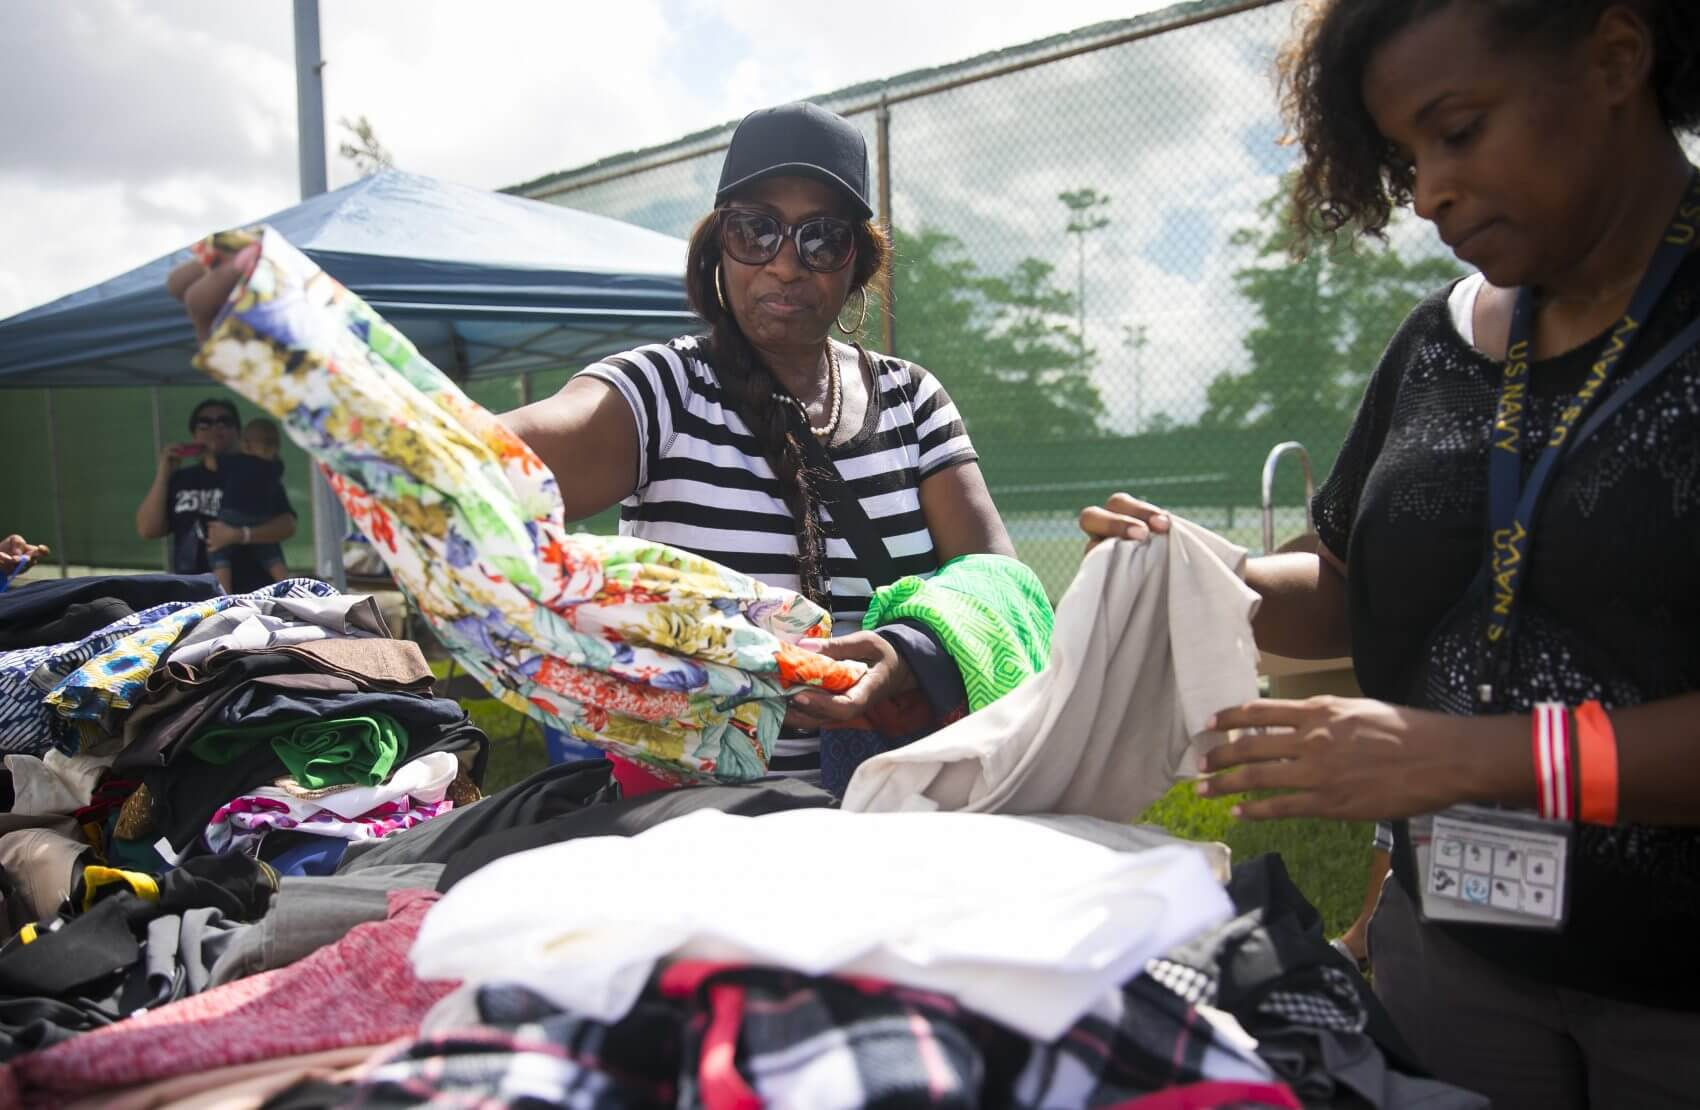 Lauren Williams, left, selects clothing from a donations table at Houston Stand Down on Oct. 5, 2018 in MacGregor Park. (Photo: Annie Mulligan)